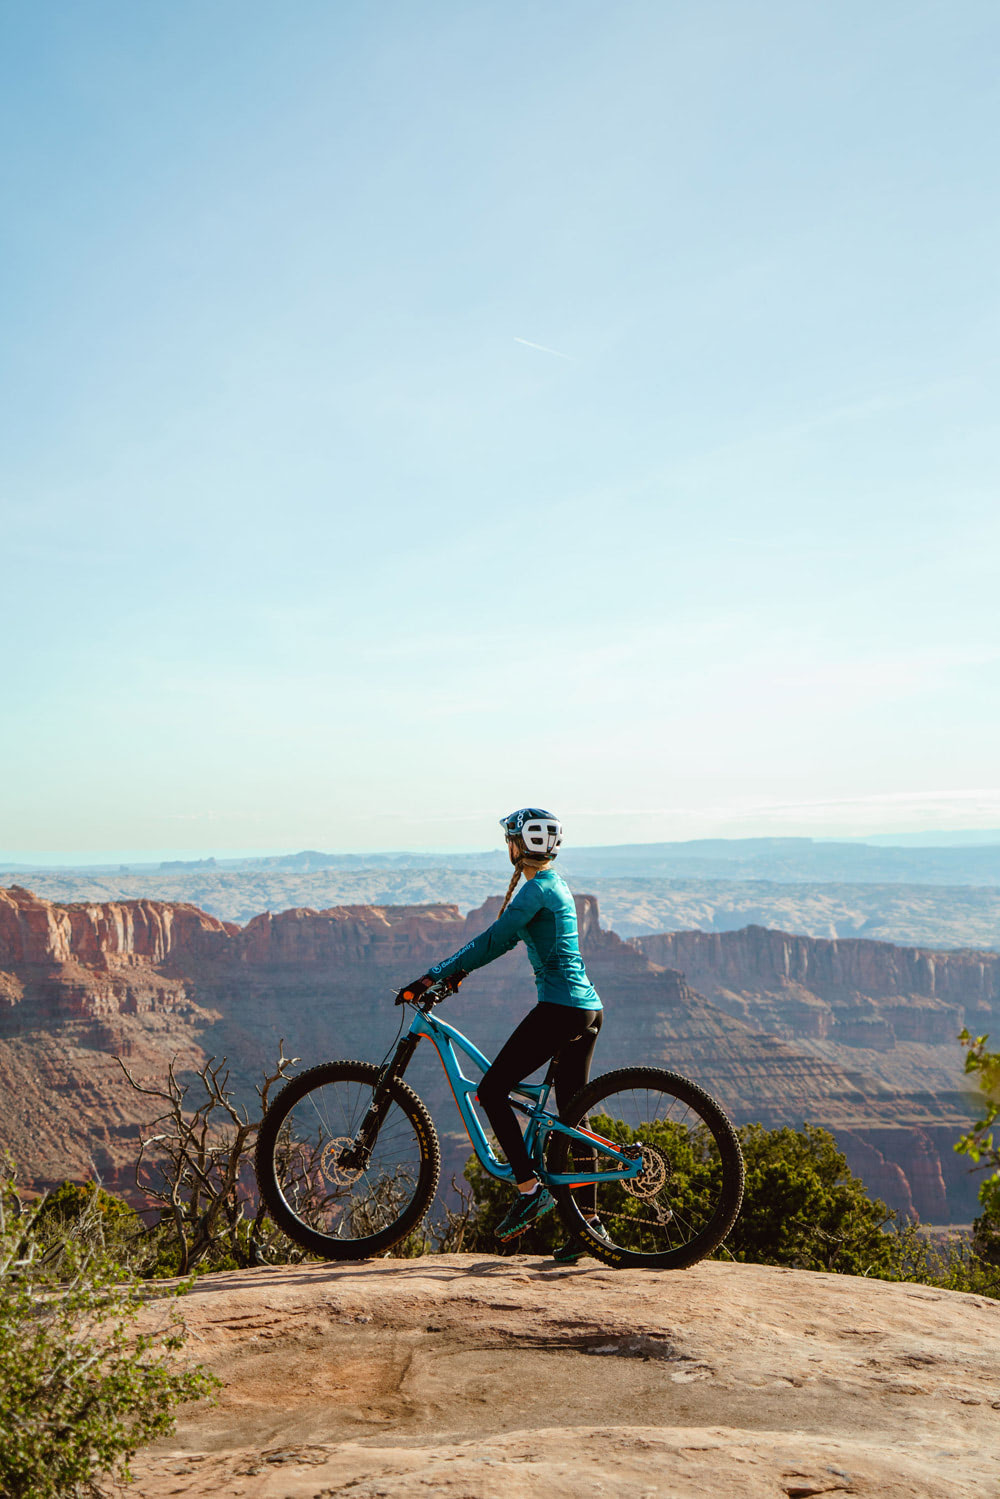 Experiencing Desert Climbing and Biking for the First Time Moab Rock Climbing with Backcountry Dead Horse Point Biking 2